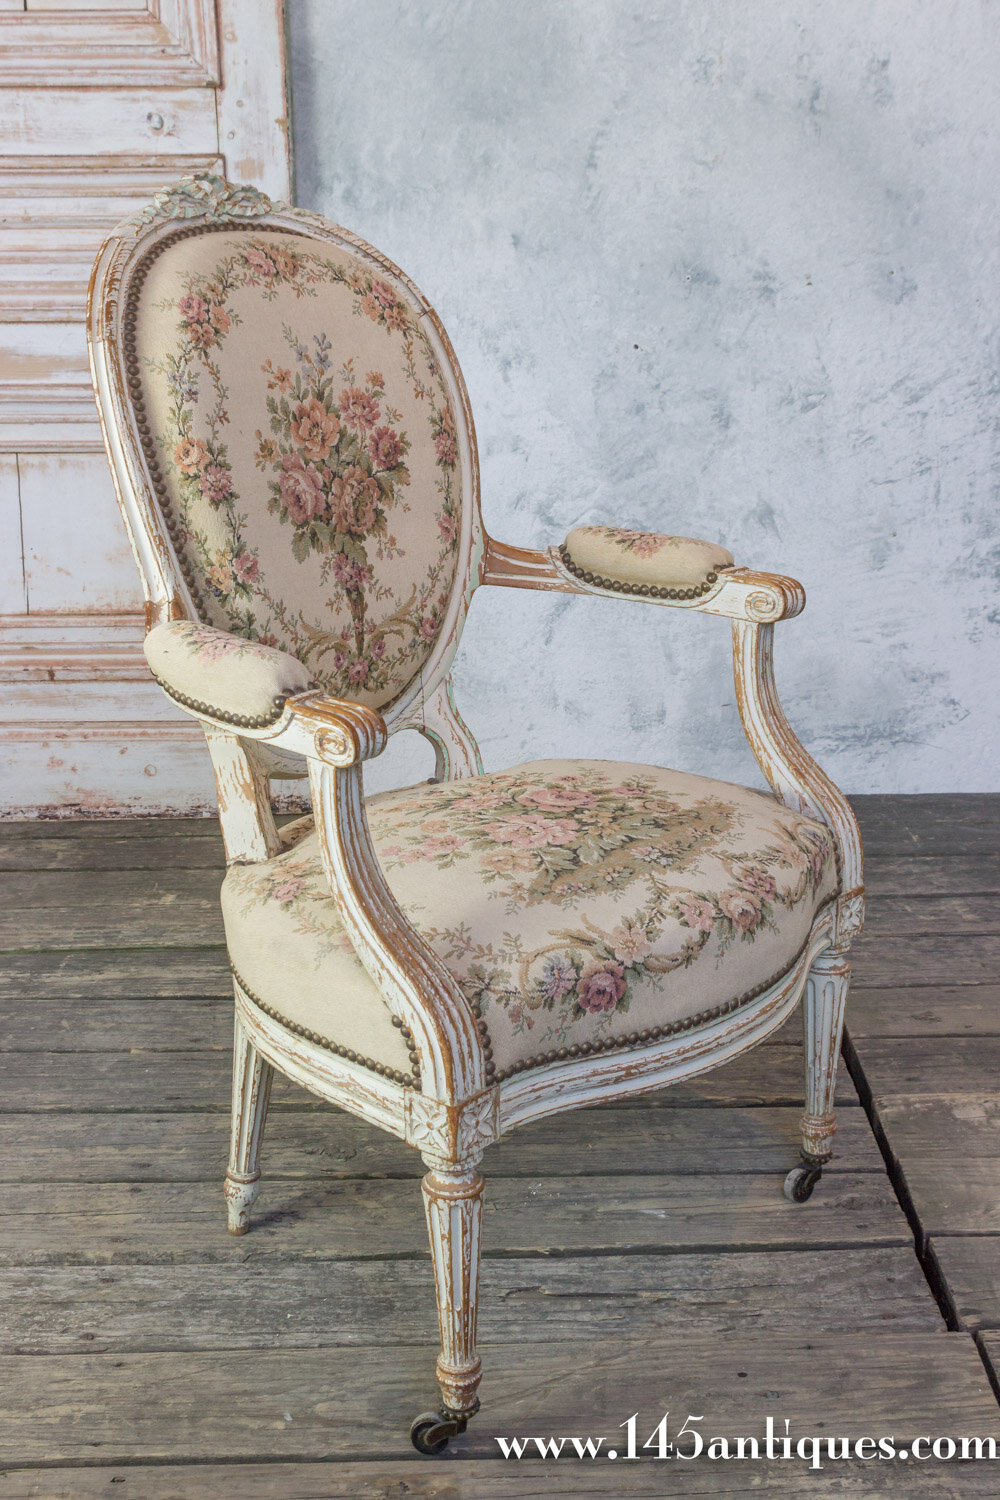 Pair Of French 19th Century Louis XVI Style Armchairs In Petit Point